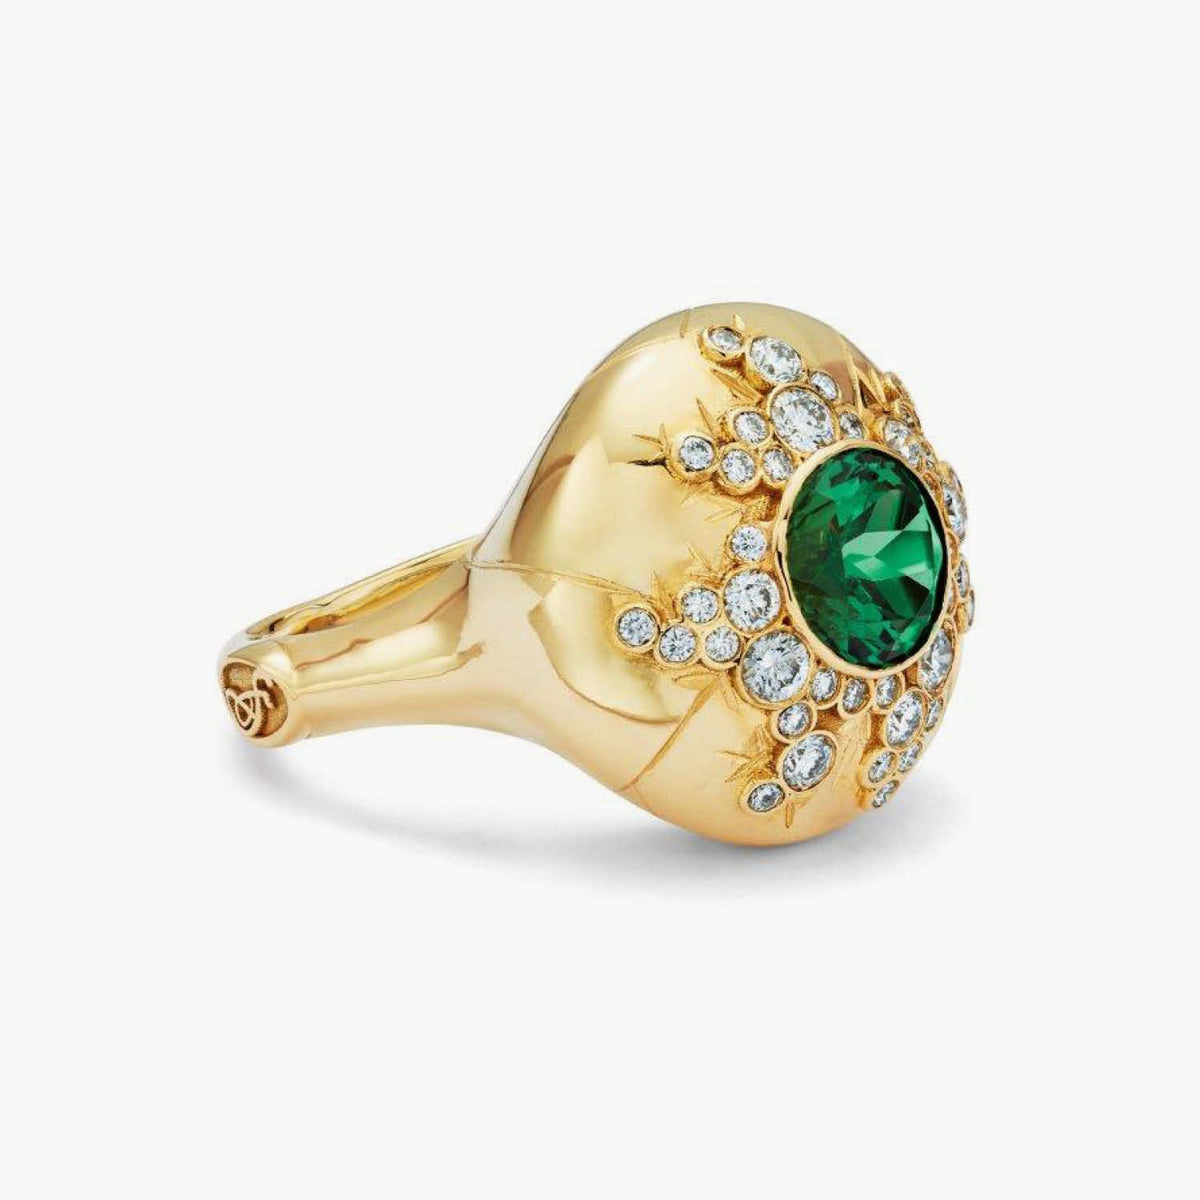 Constellation Collection Dome Ring with Tourmaline